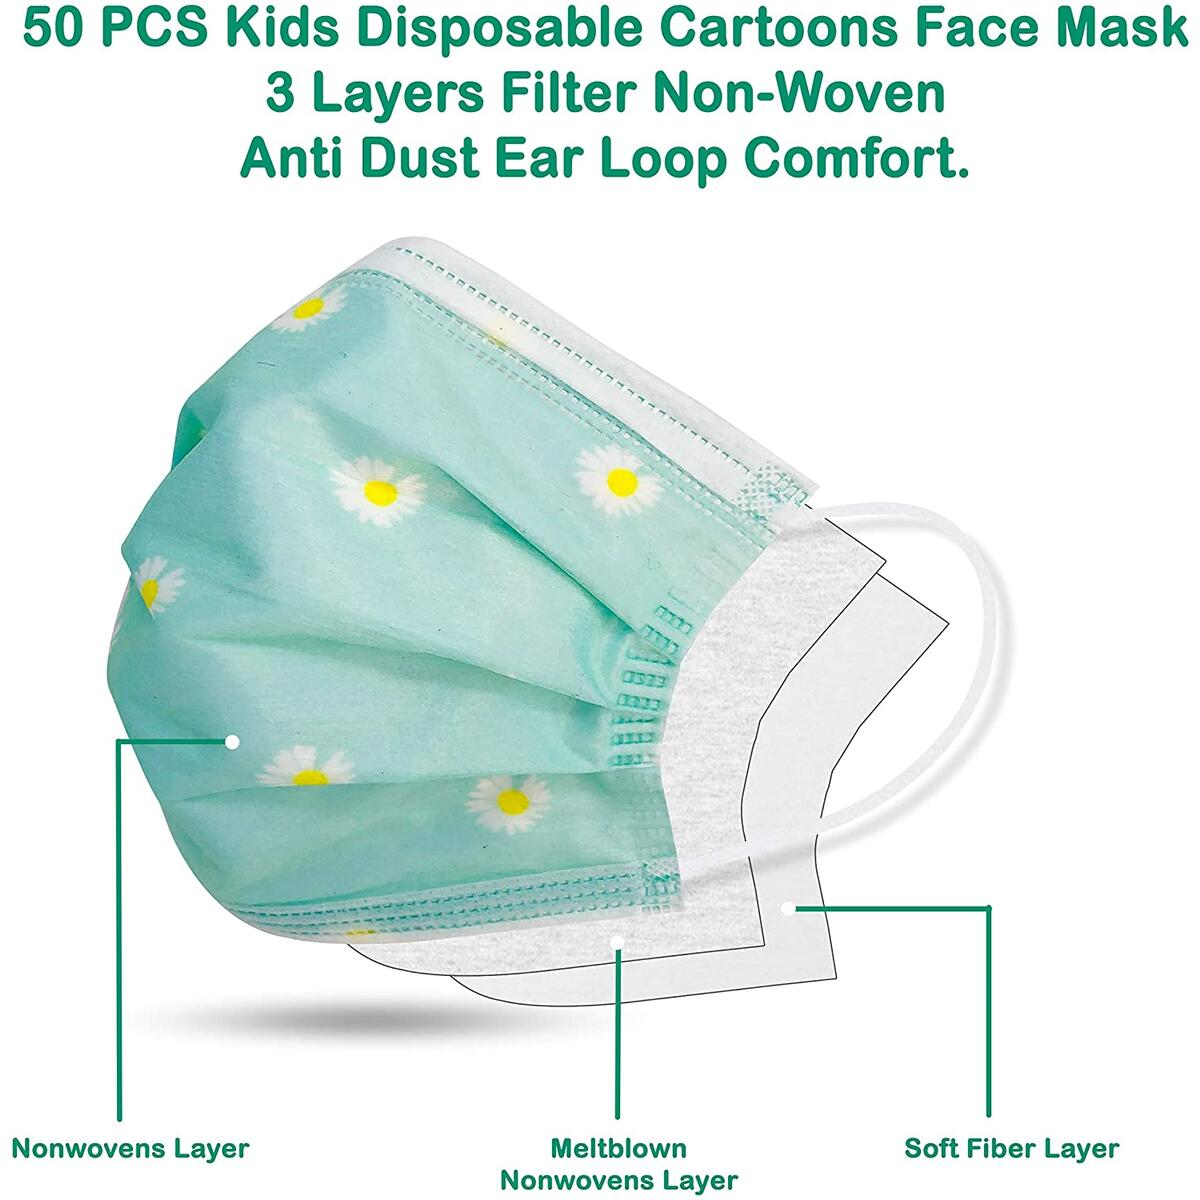 Toddler Face Masks – 50Pcs Kids Disposable Face Masks – 3-Ply Mask for Kids – 5 Cute Designs – Non-Woven Fabric and Comfortable Ear Loops – Optimal Breathability